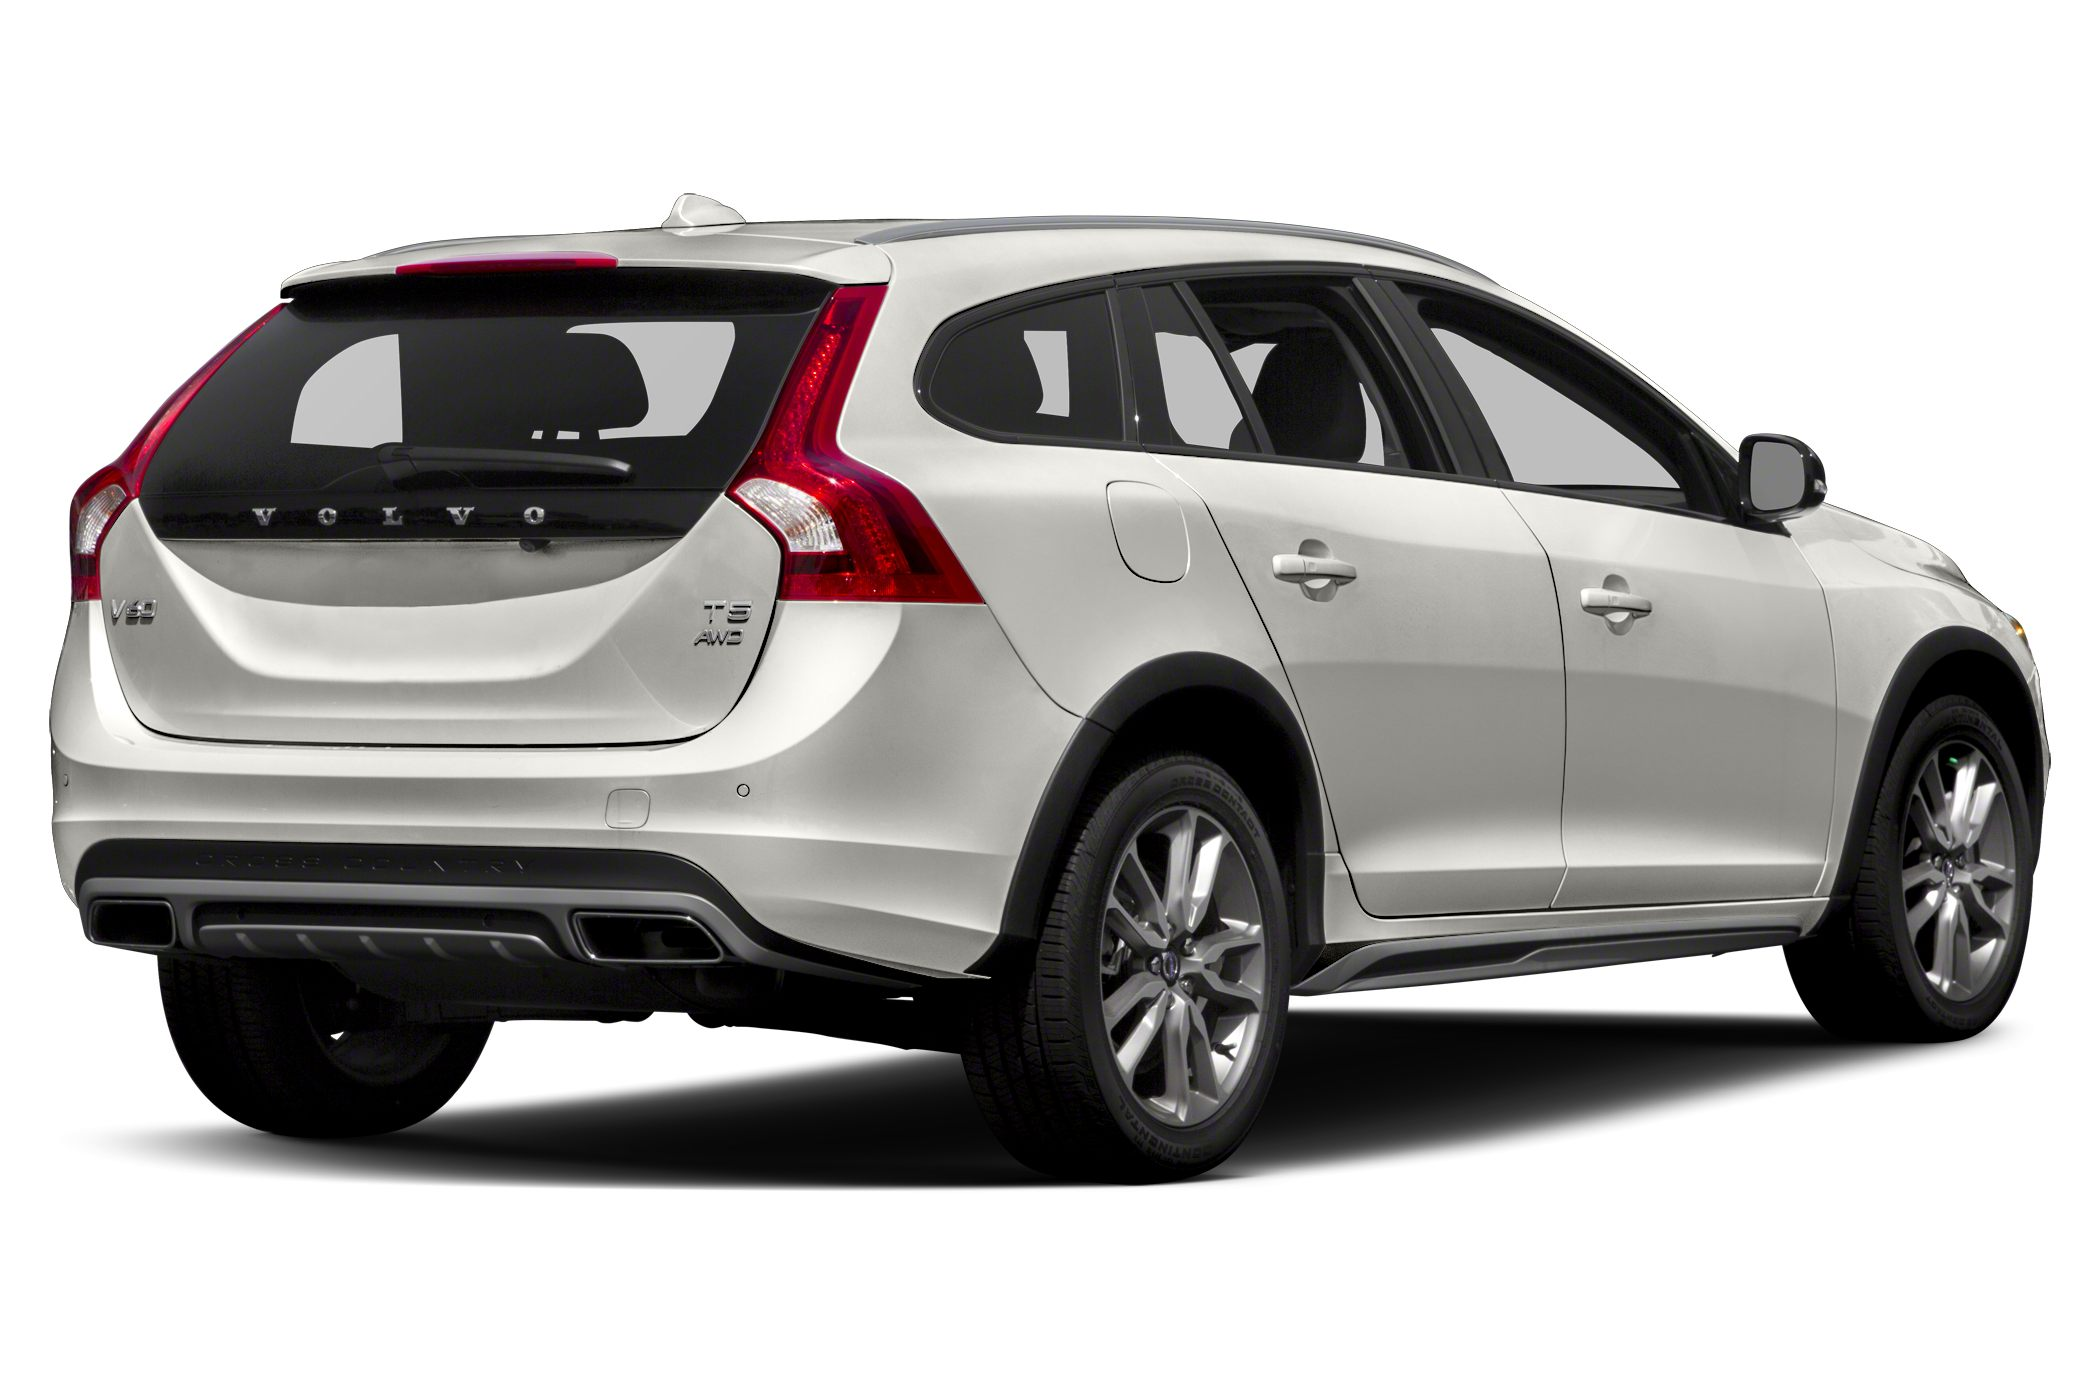 Acura Lease Deals >> 2018 Volvo V60 Cross Country Specs, Safety Rating & MPG - CarsDirect